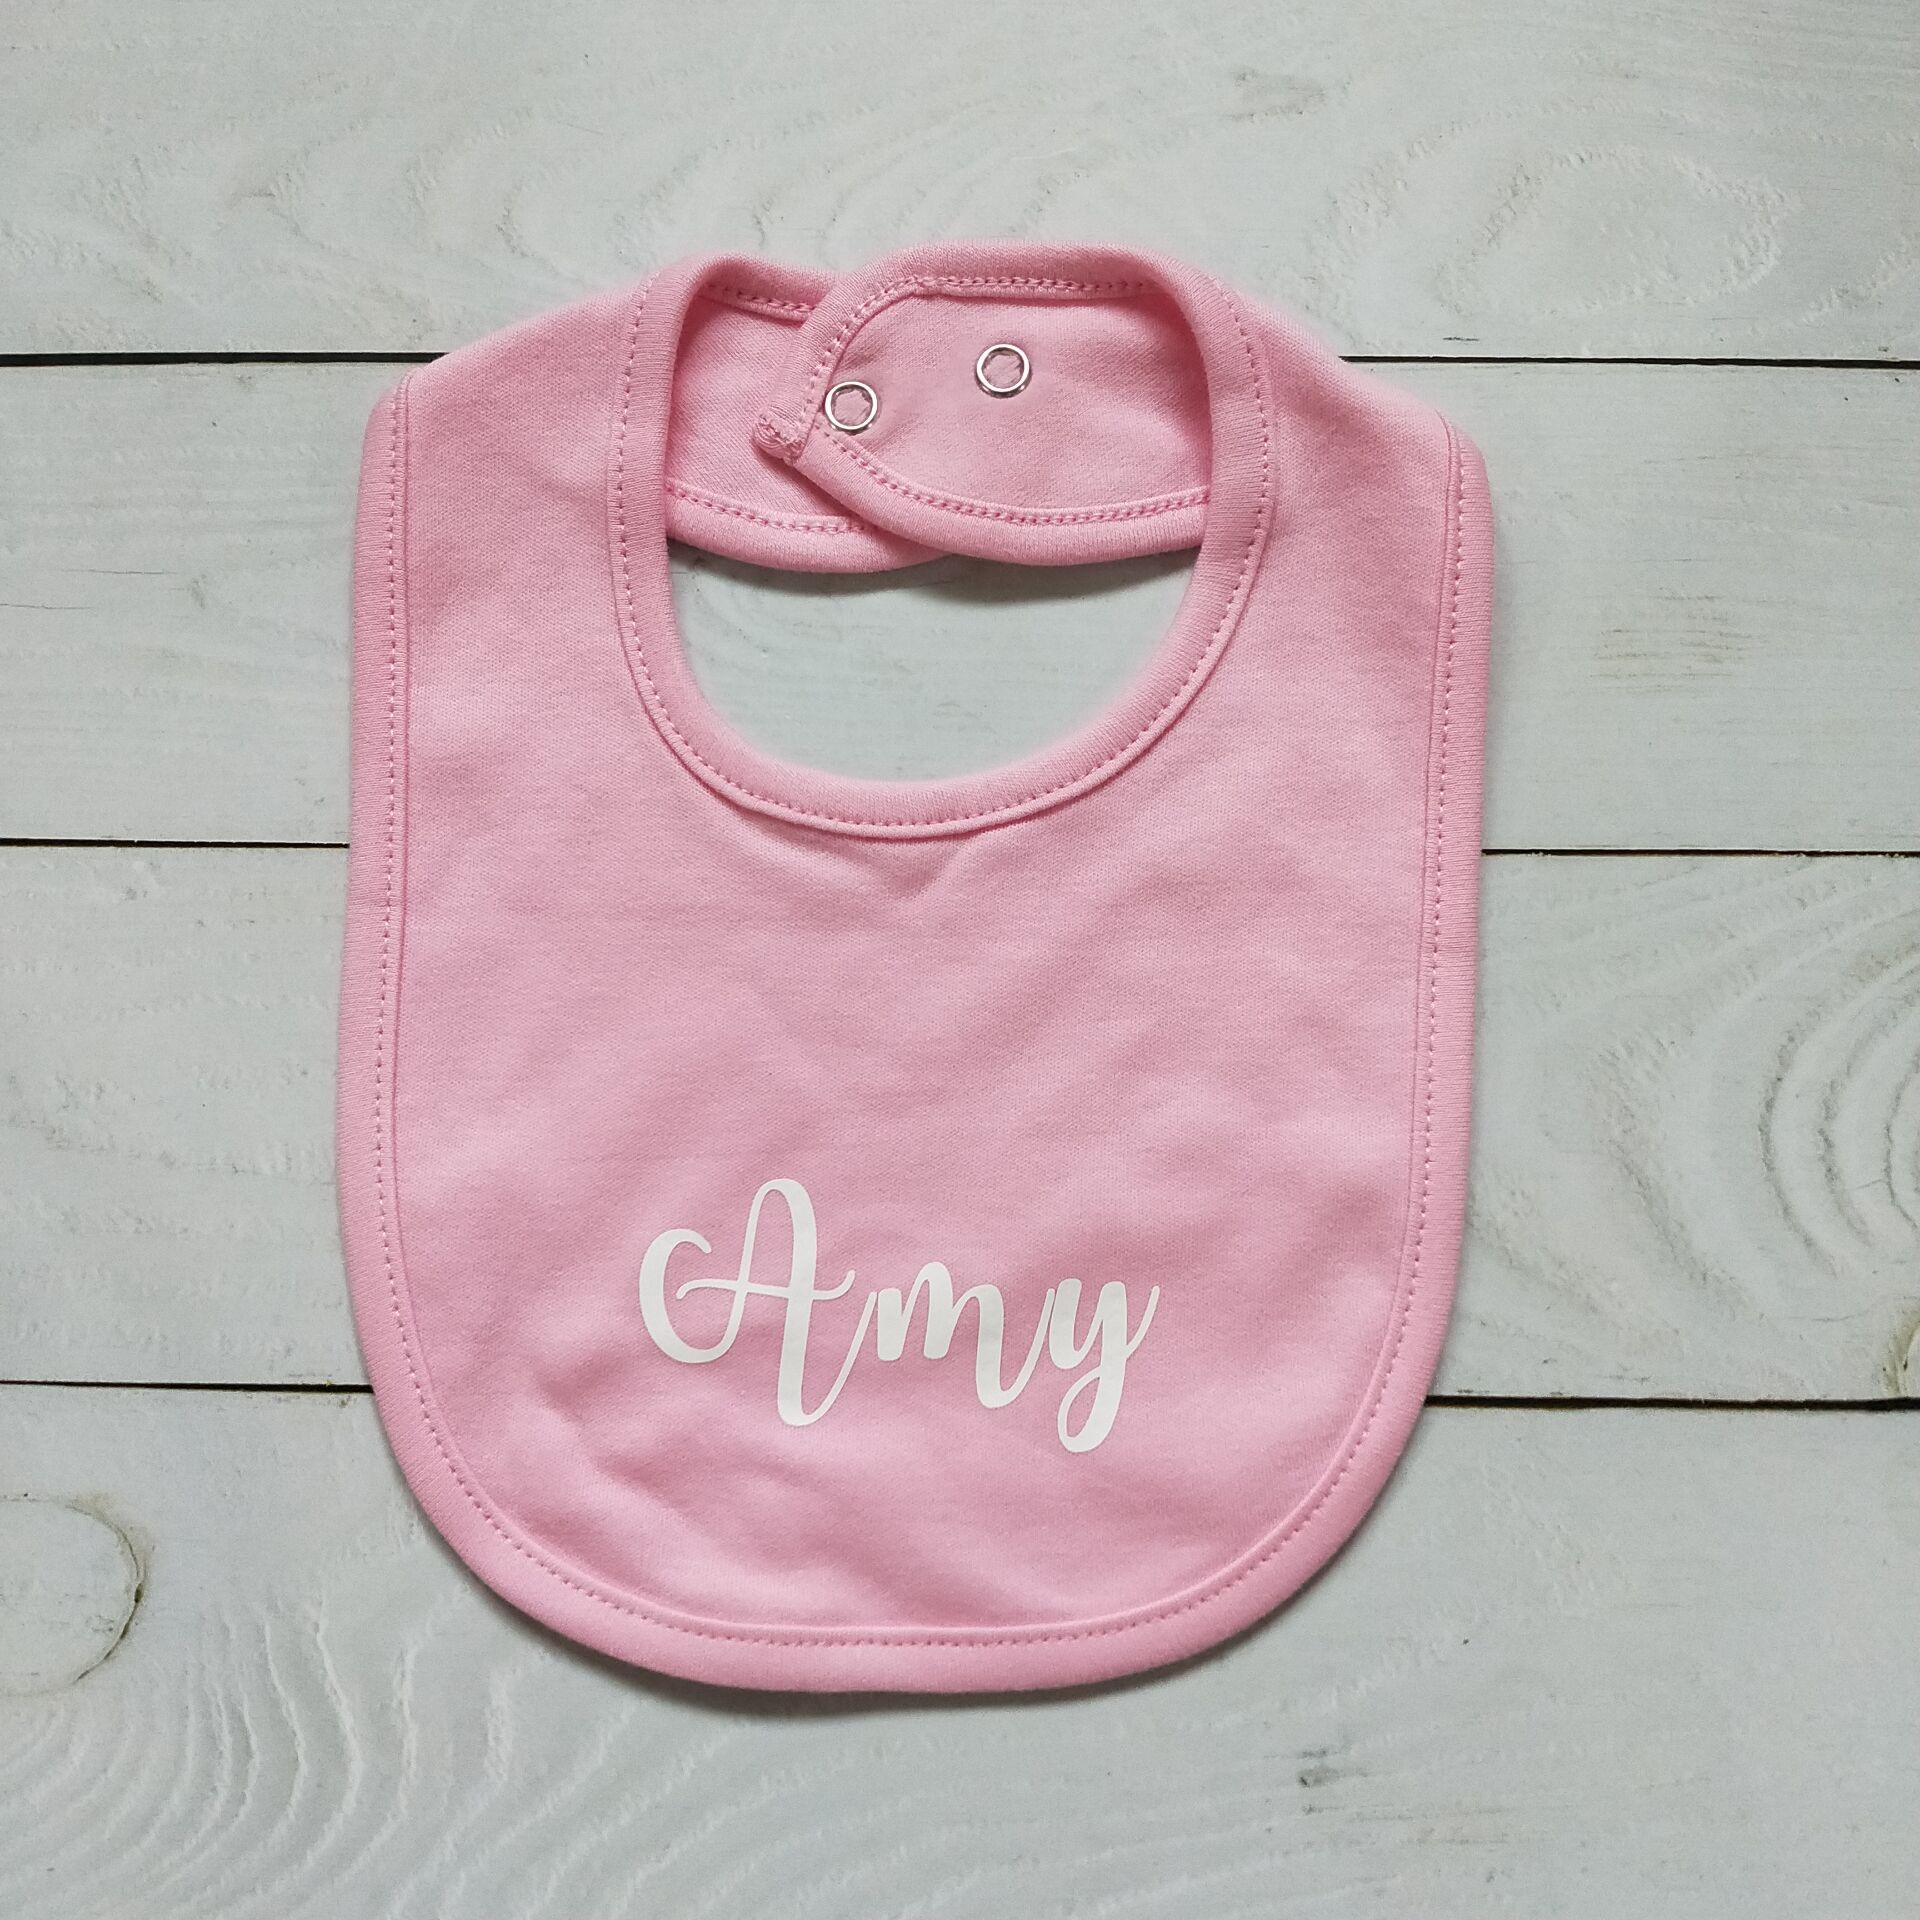 Personalized Drooling Towel Newborn Baby Feeding Smock Baby Shower Gifts Baby Bibs Custom Baby Eating Accessory Baby Stuff Bibs